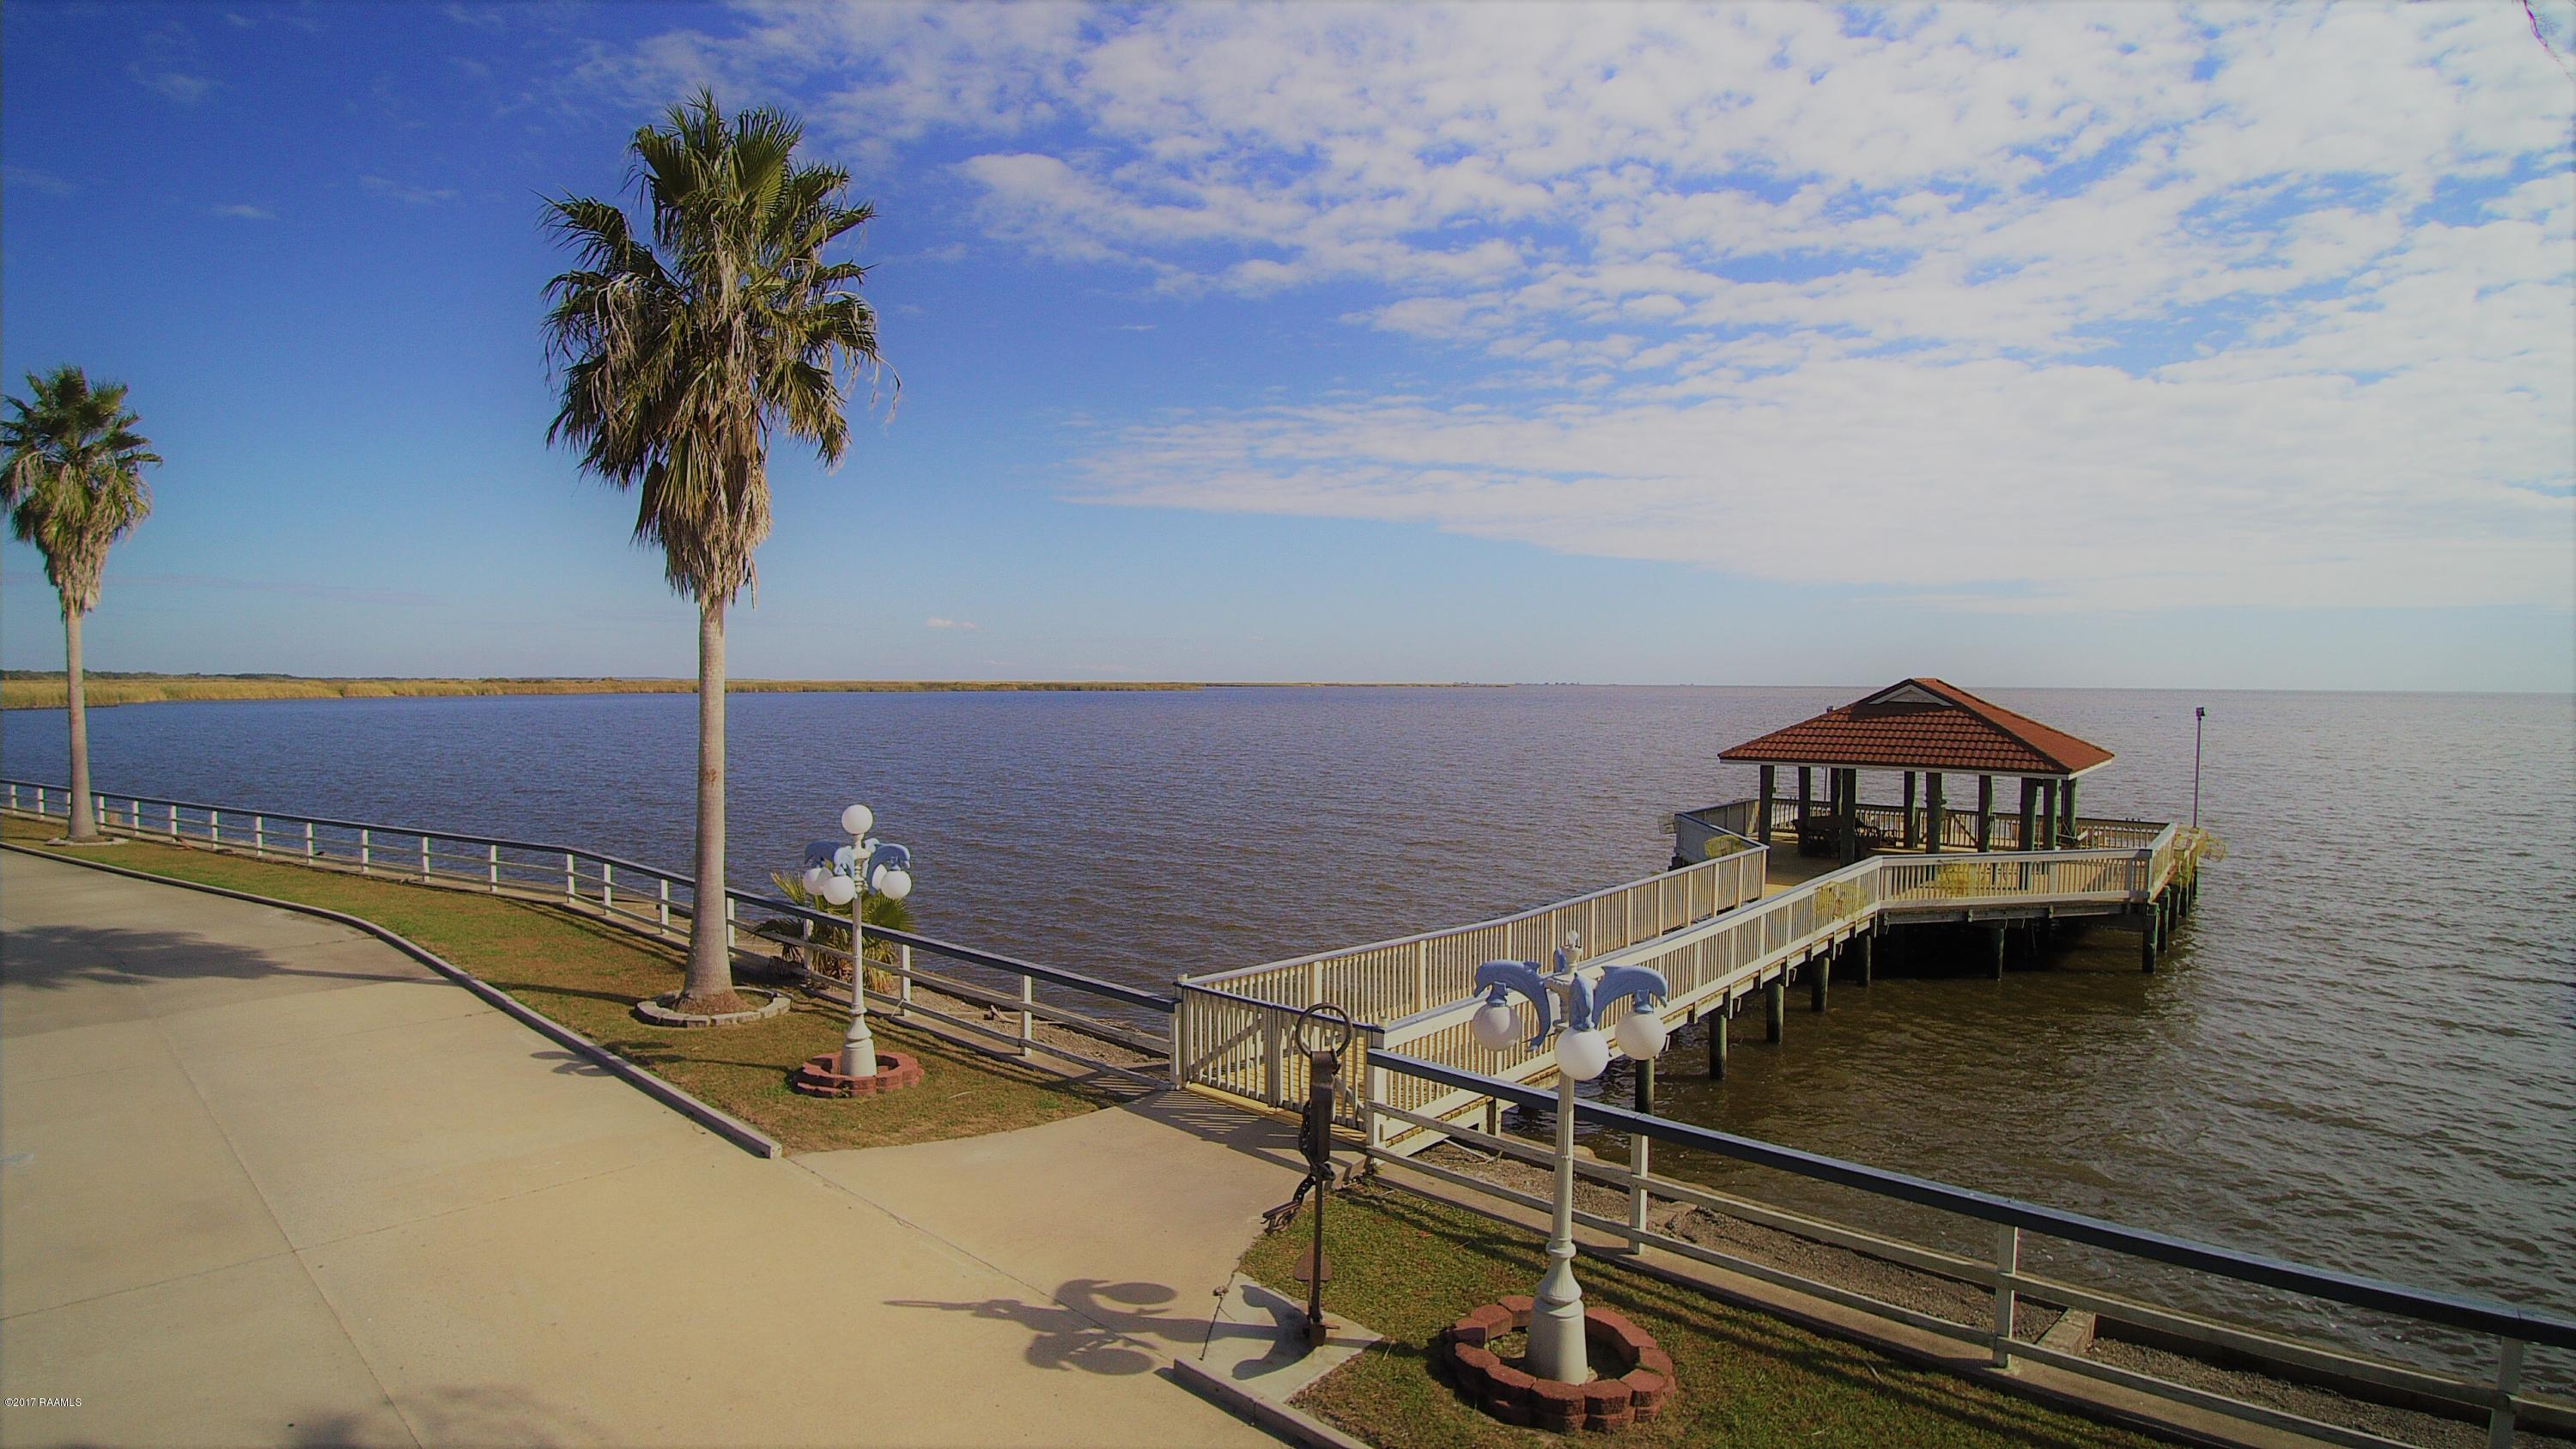 442 Bayview Drive, Cypremort Point, LA 70538 Photo #38